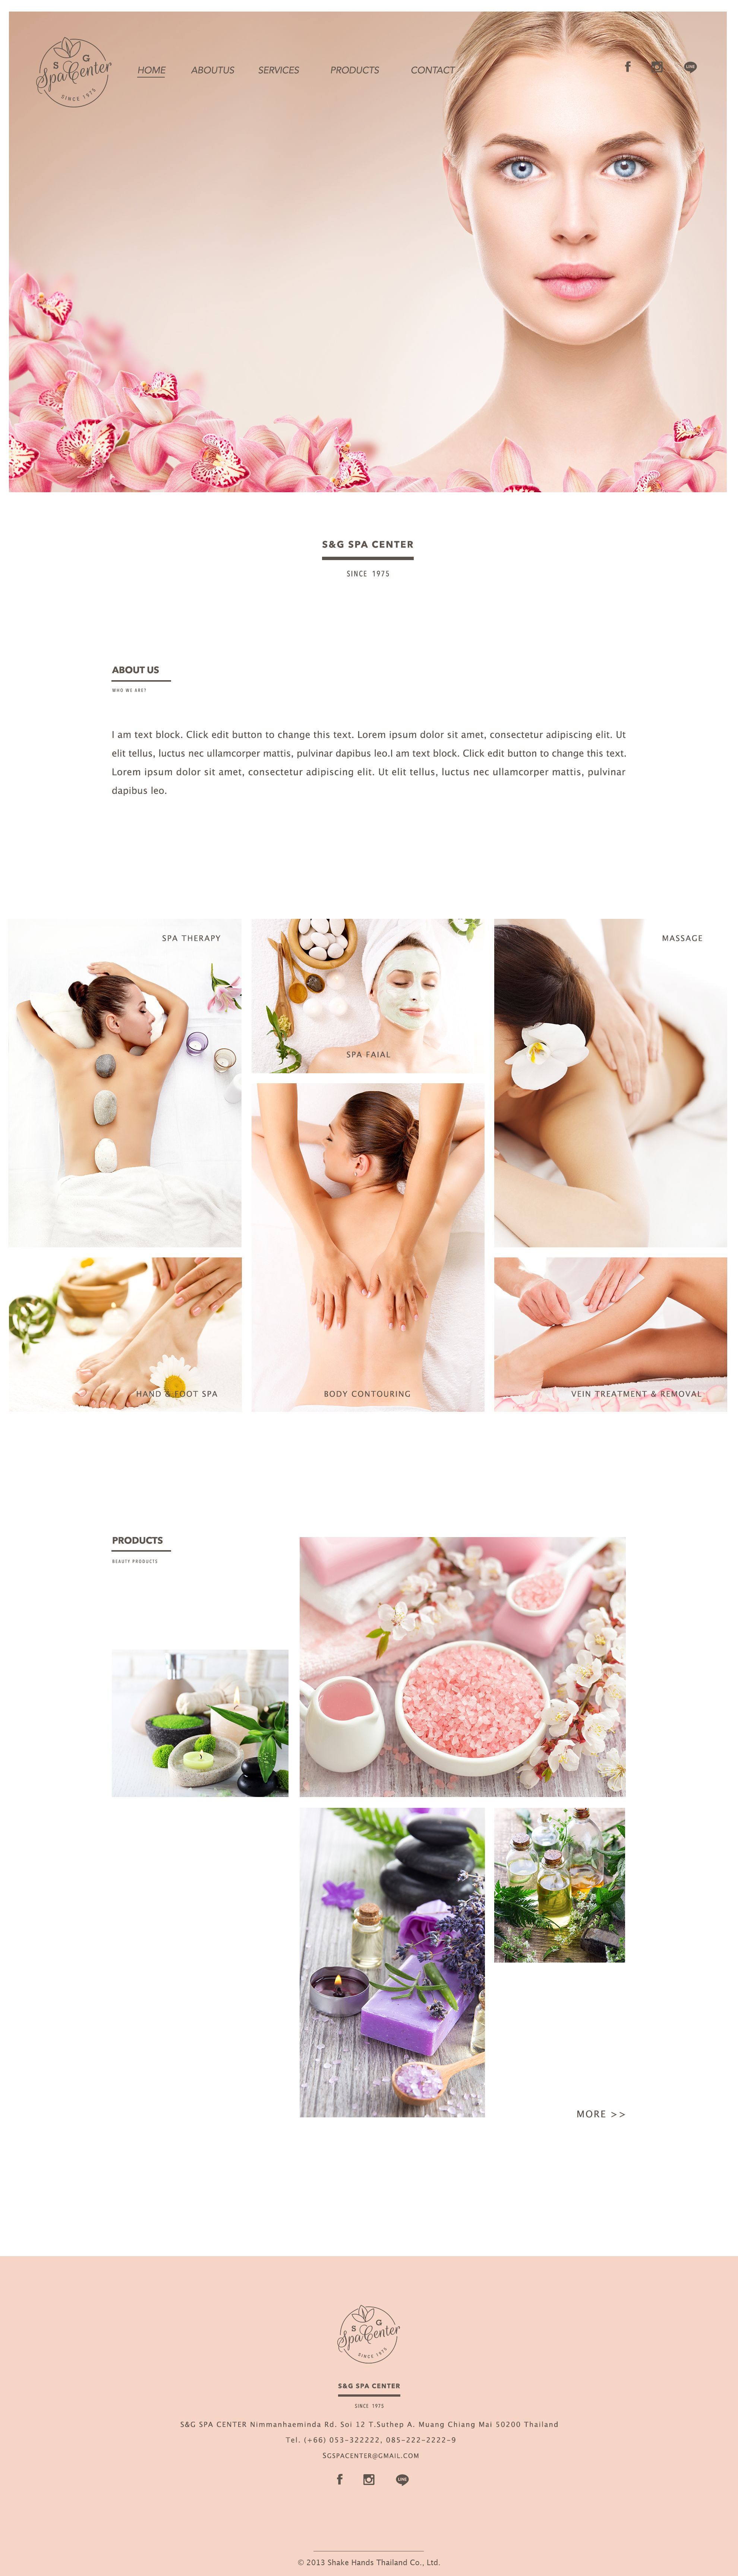 Pin By Jeremee Ang On Web Design Inspiration Web Layout Design Spa Website Beauty Website